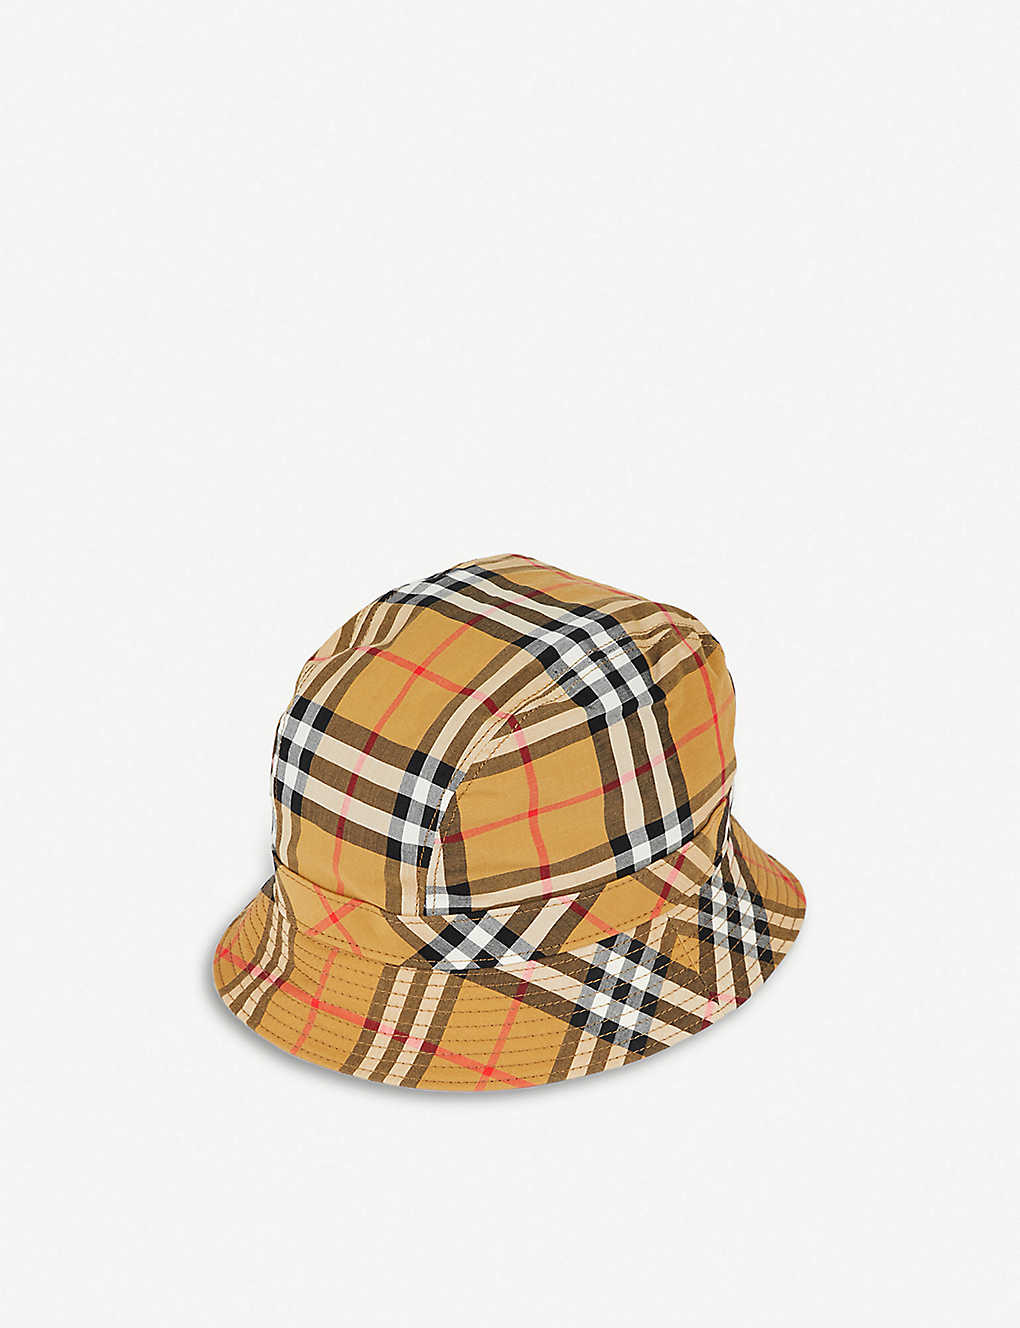 BURBERRY - Vintage Check bucket hat  d15bccd1f25